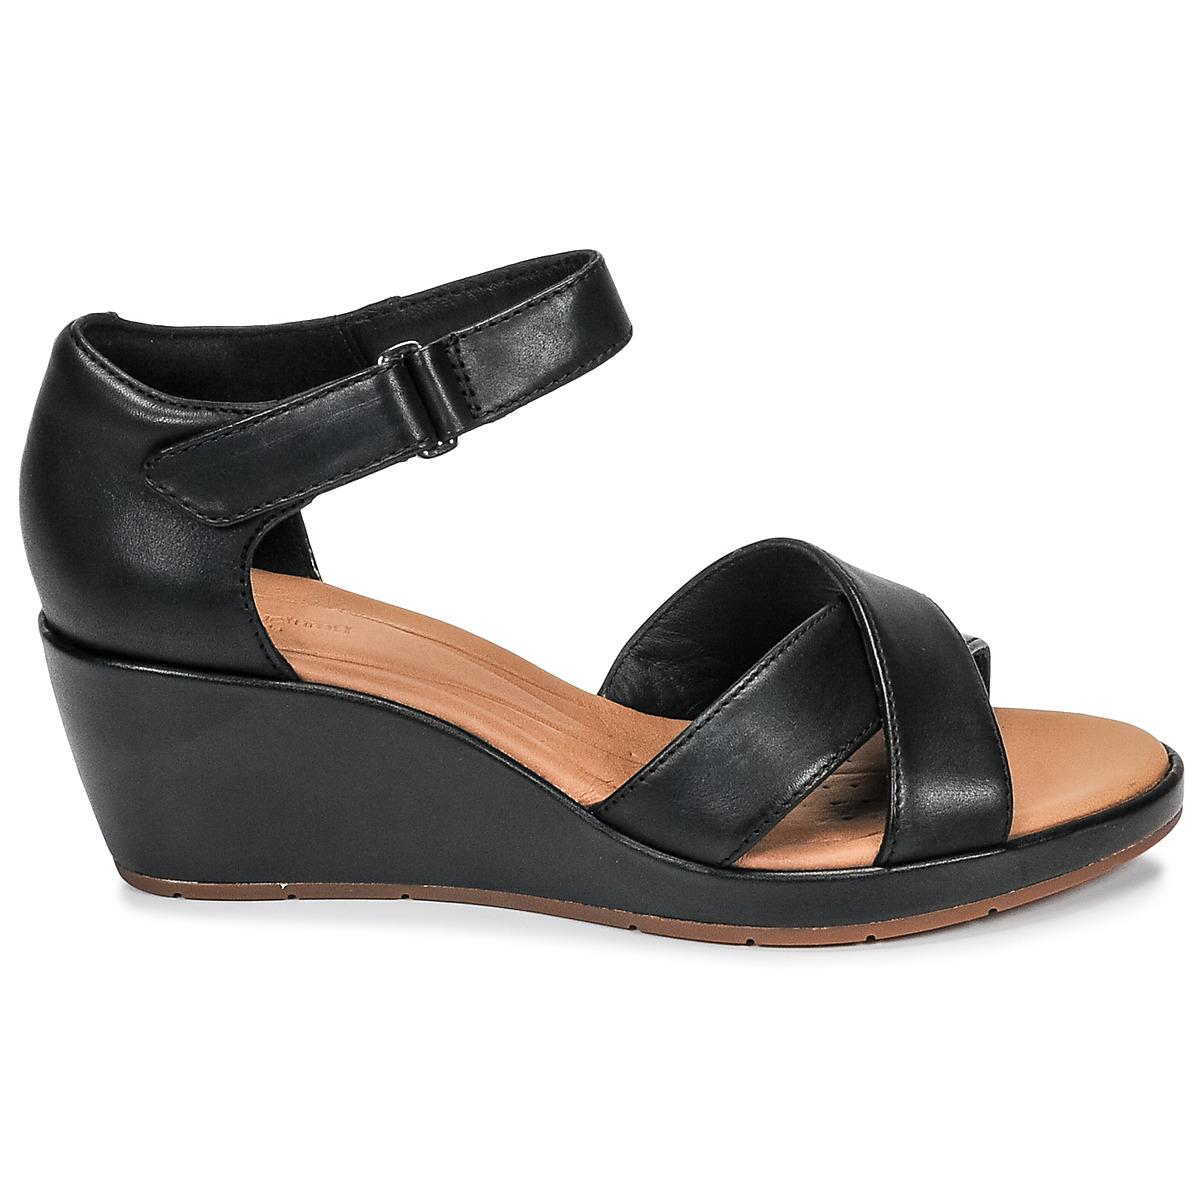 e6729a0addb Clarks - Un Plaza Cross Women s Sandals In Black - Lyst. View fullscreen